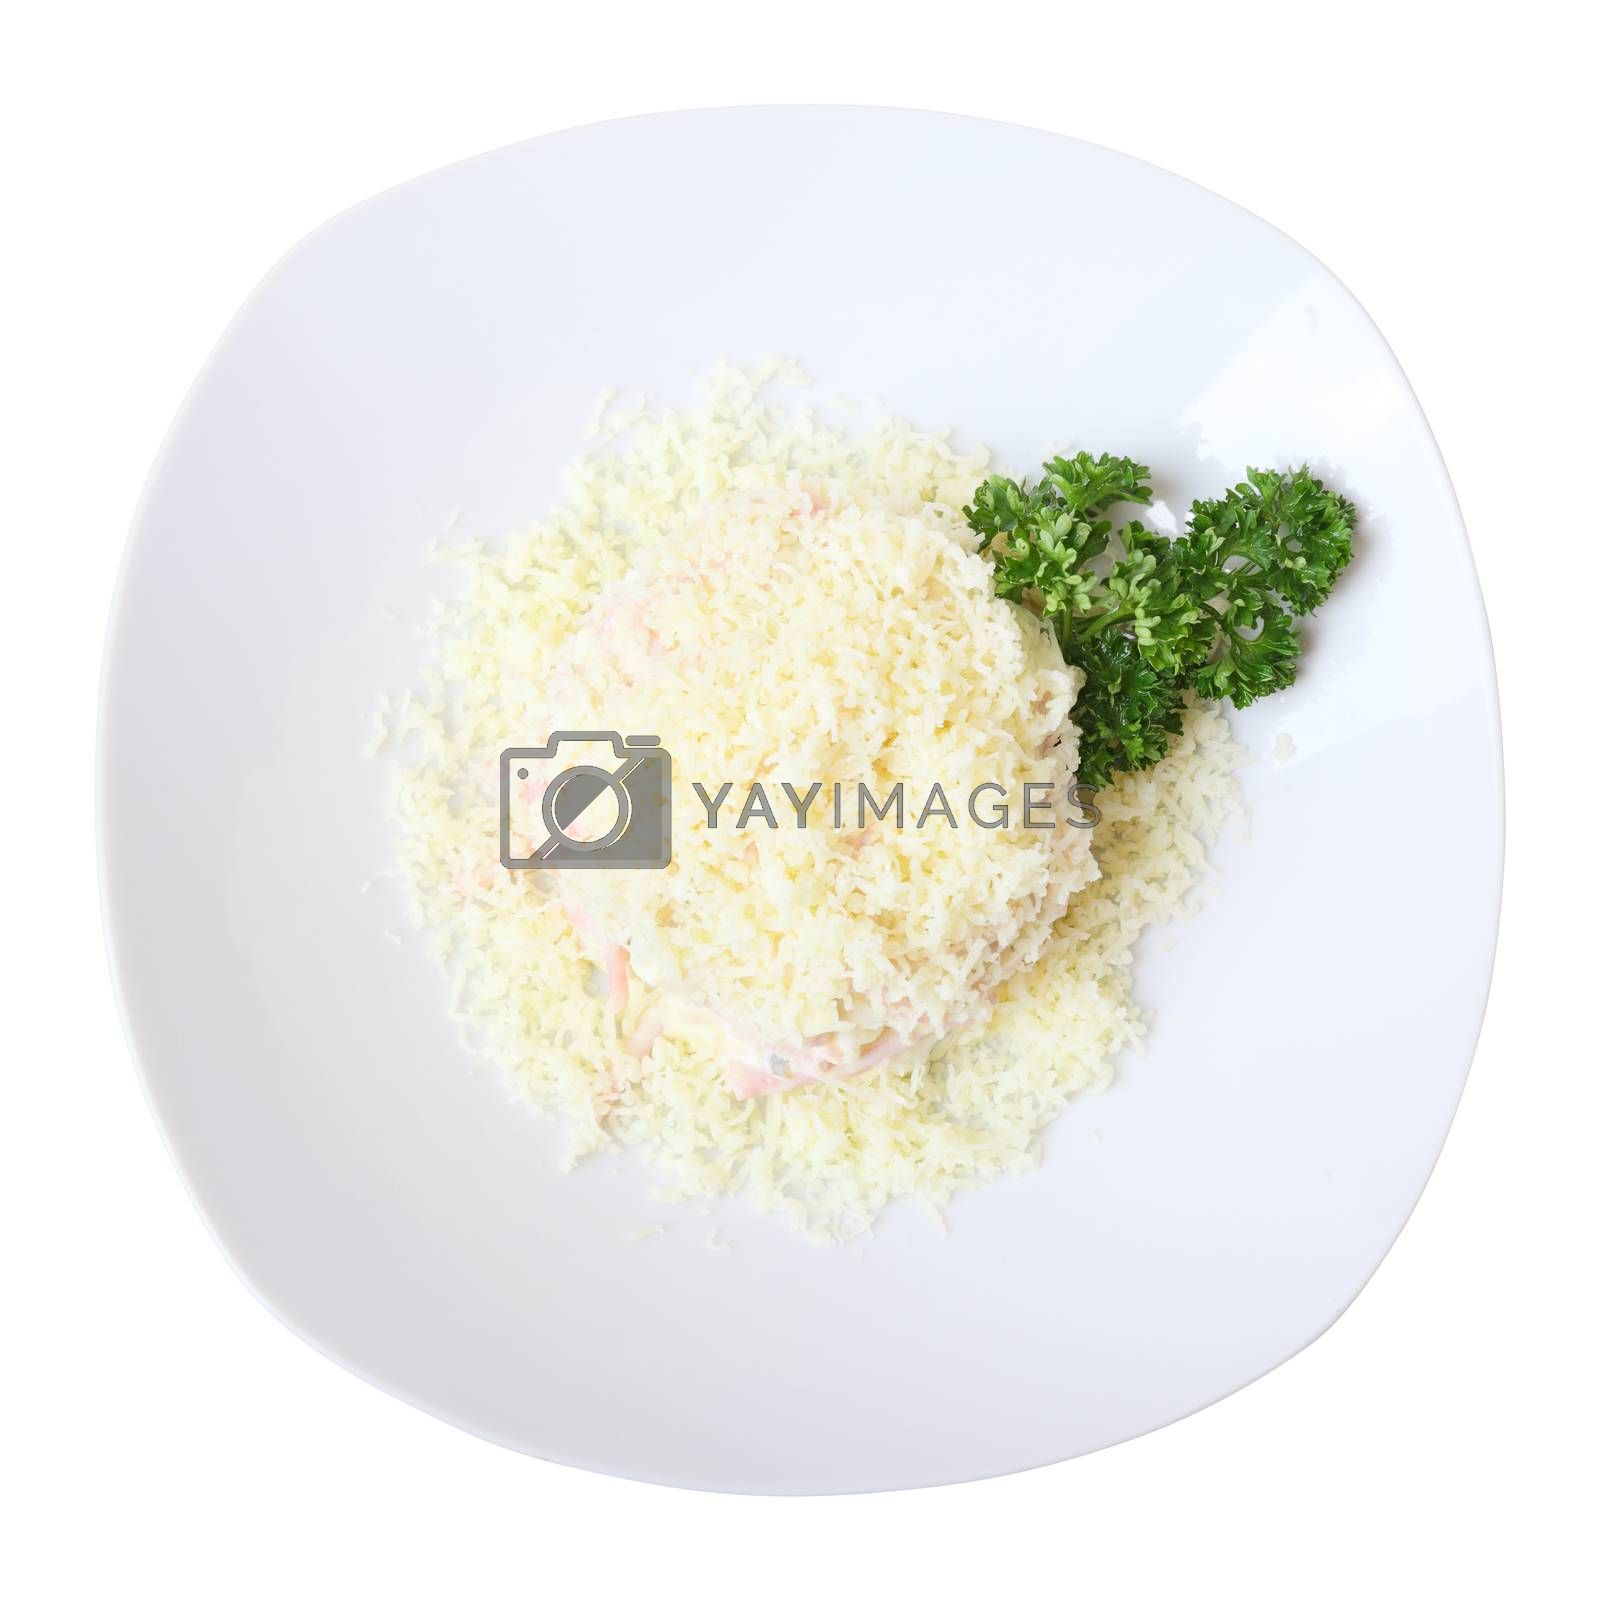 Royalty free image of confetti salad by whiterabbit